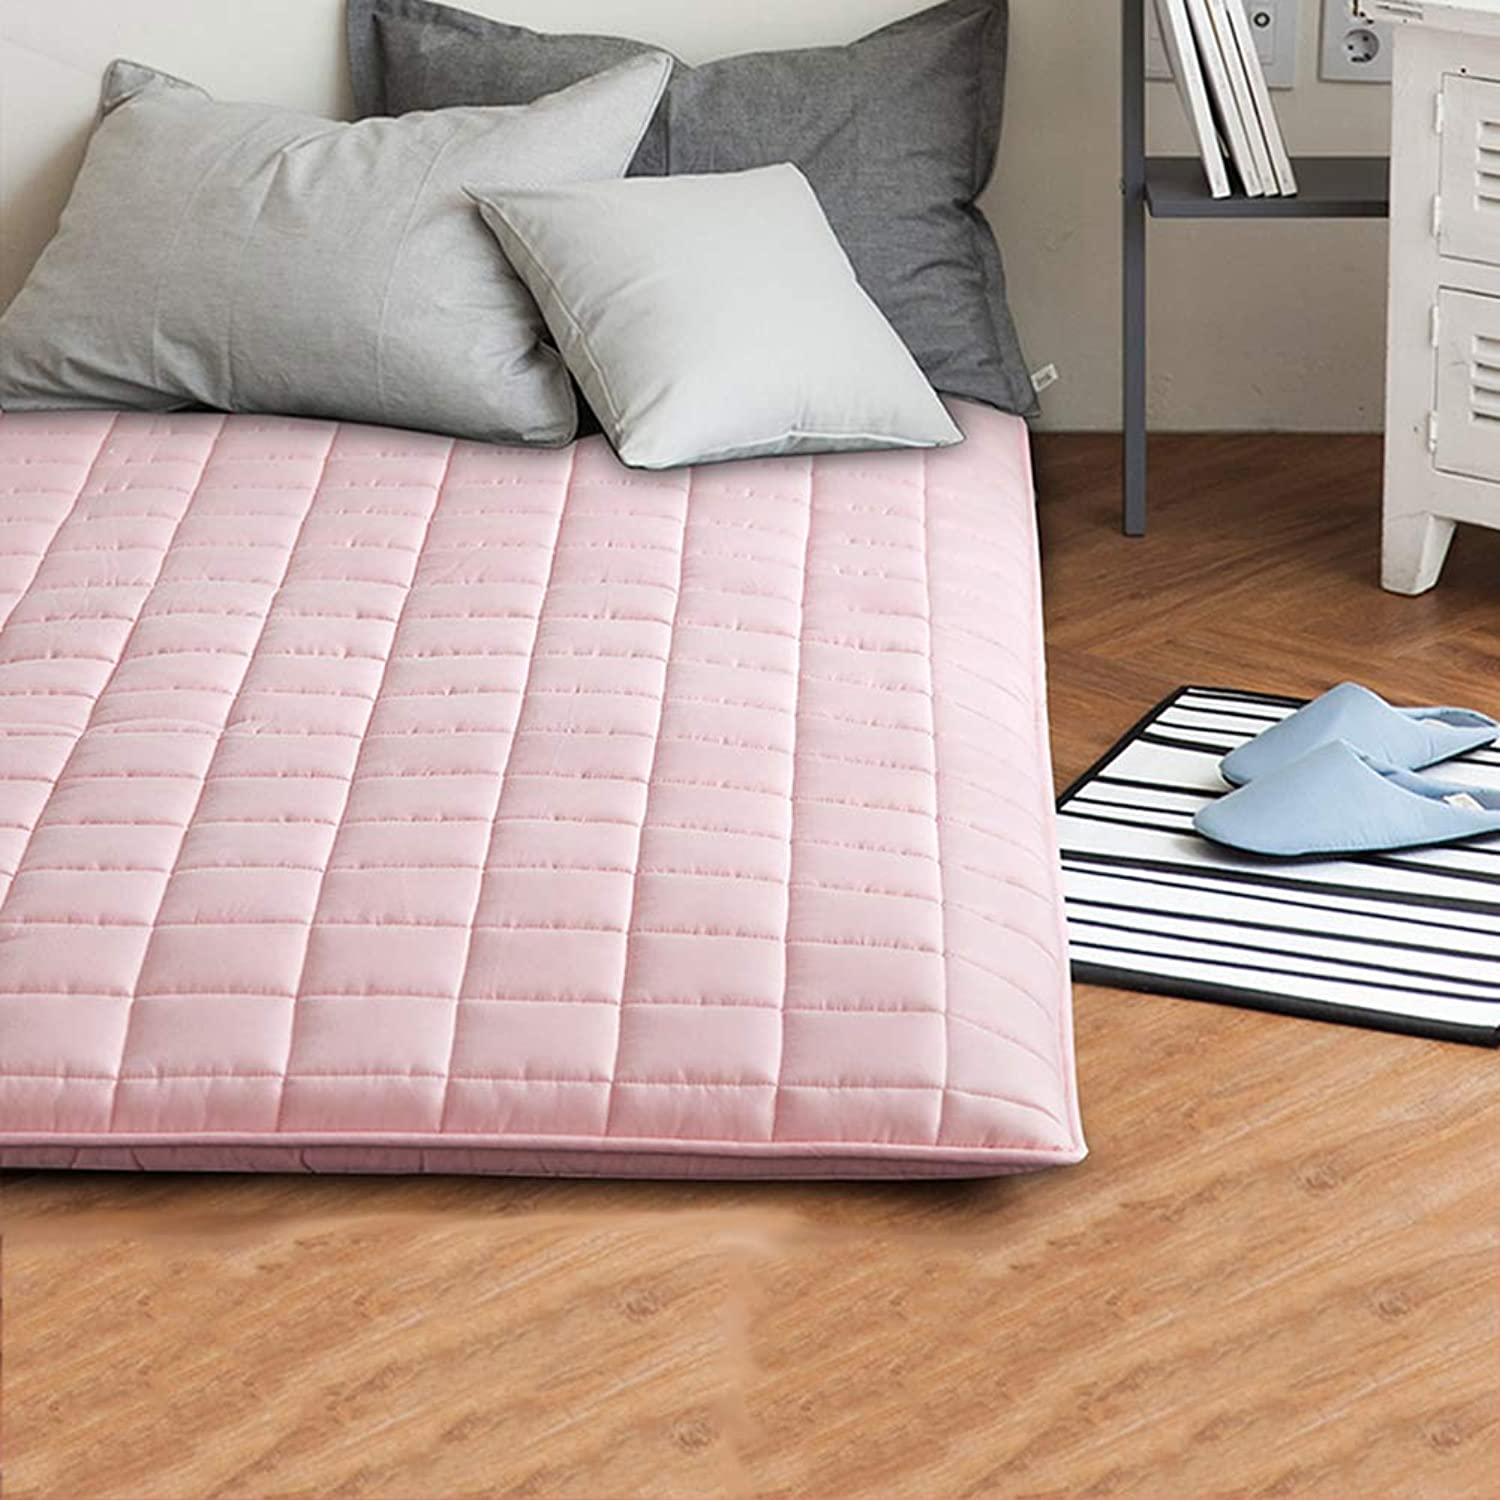 Dust mite & Allergy Control Mattress Predector Sleeping pad Tatami futon Mattress, Quilted Fitted 205tc Cotton Mattress pad Topper Japanese Floor futon mats-Pink 120x200cm(47x79inch)